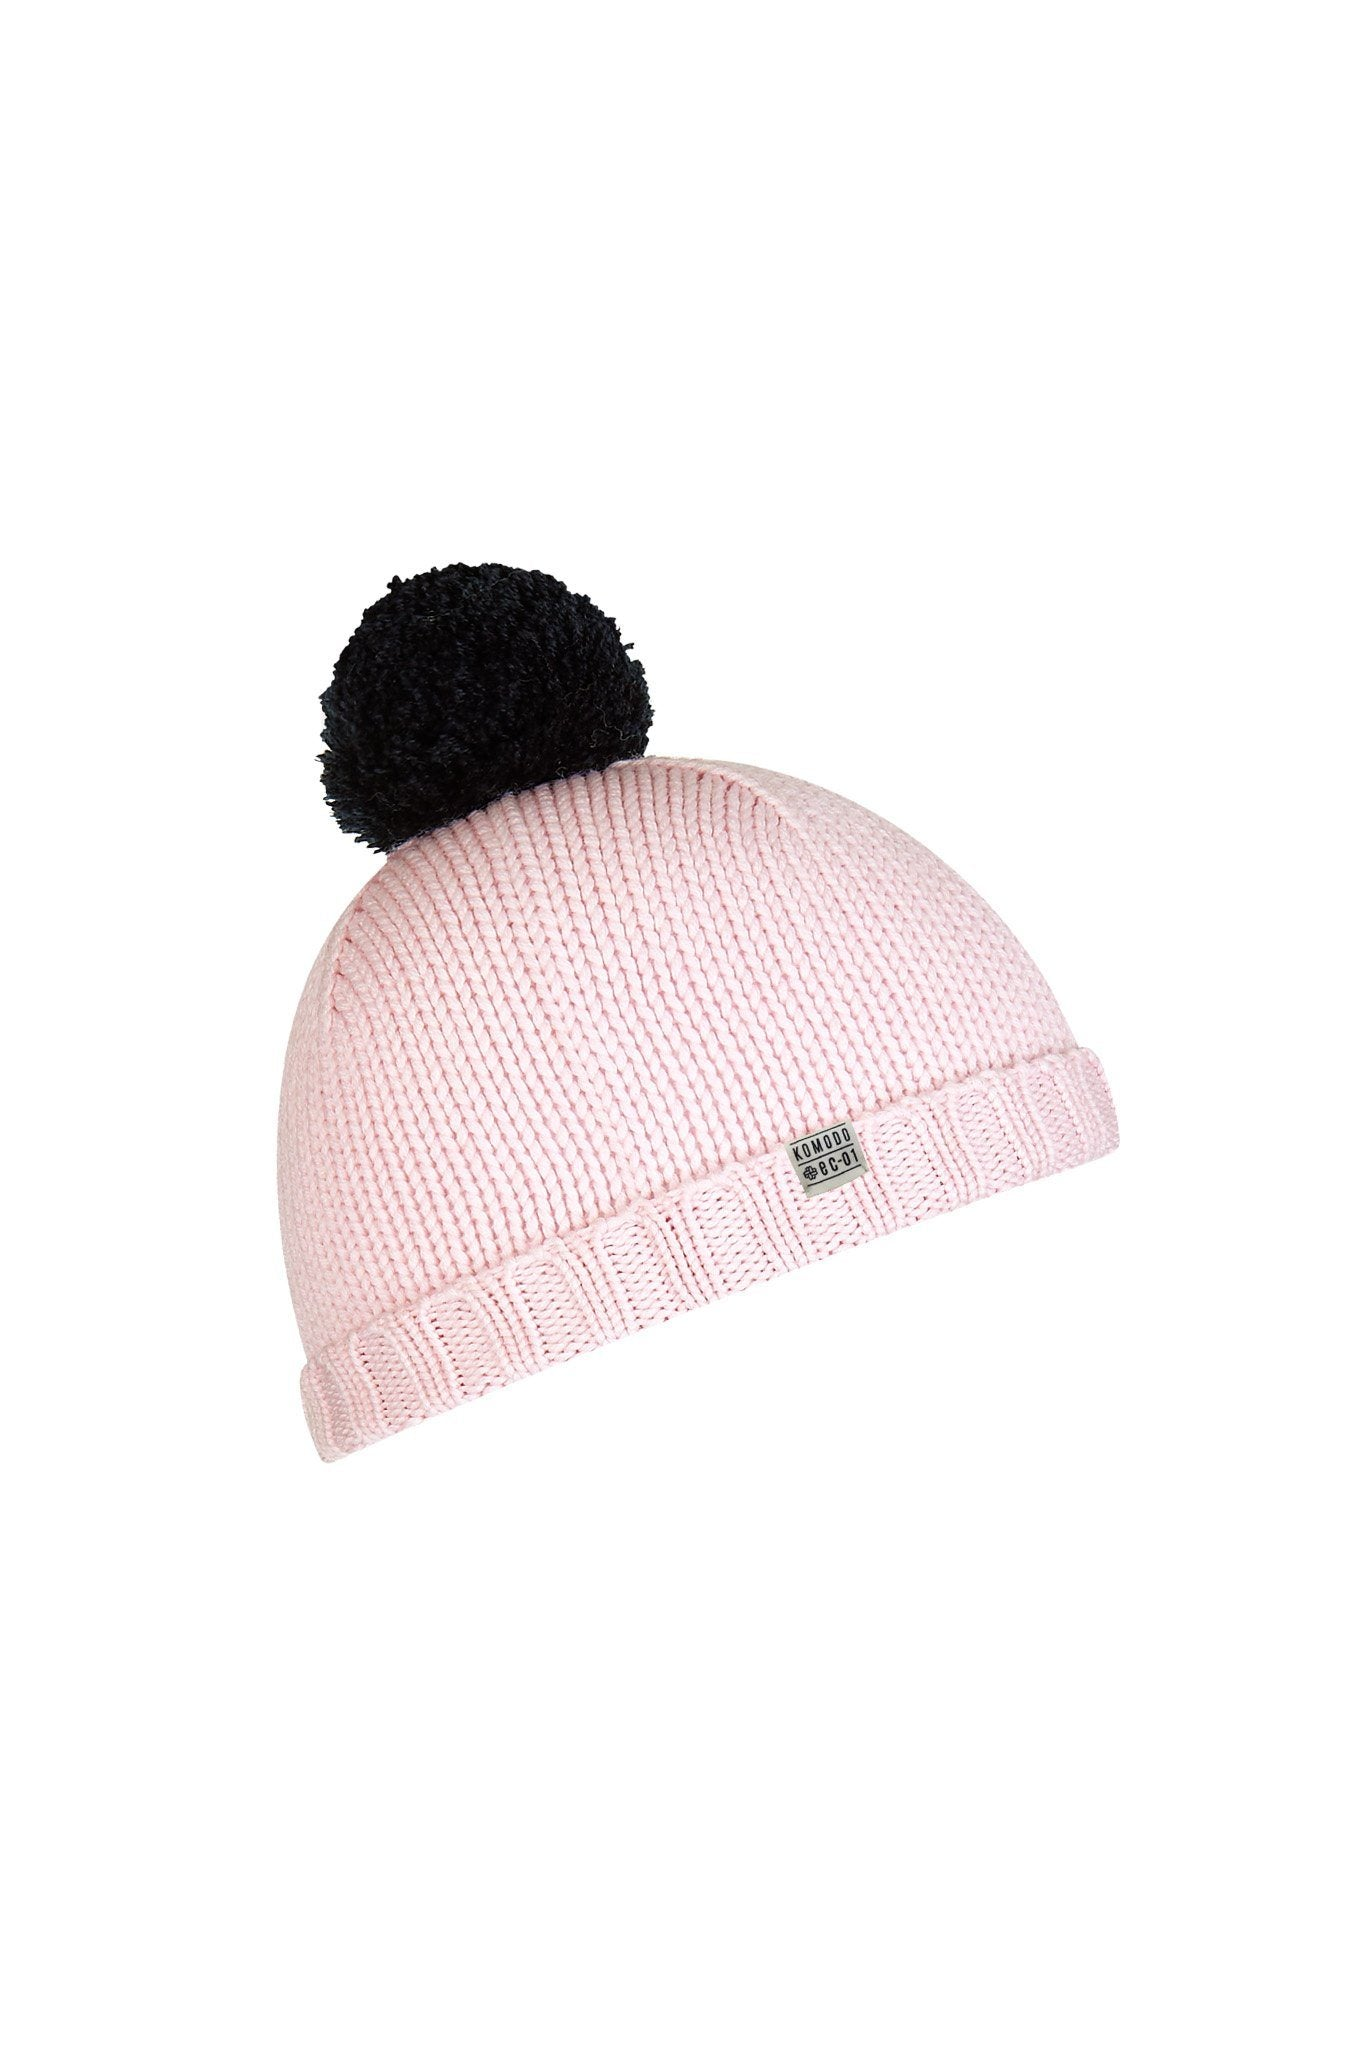 Accessories - LUCY Merino Wool Hat Shell